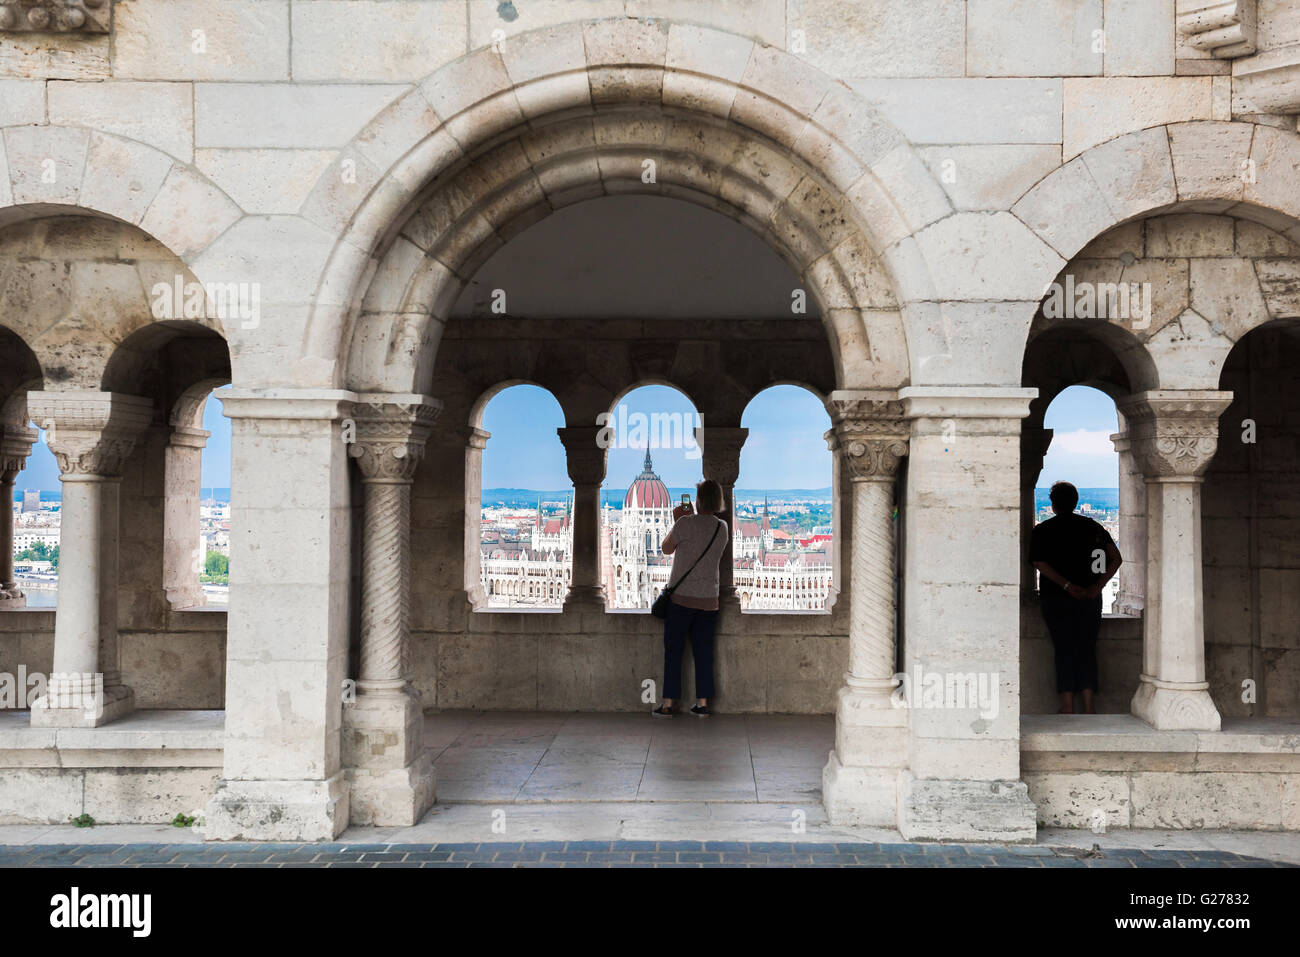 Budapest tourist, a woman tourist in a cloister inside the Fishermen's Bastion in the Var area of Budapest snaps - Stock Image